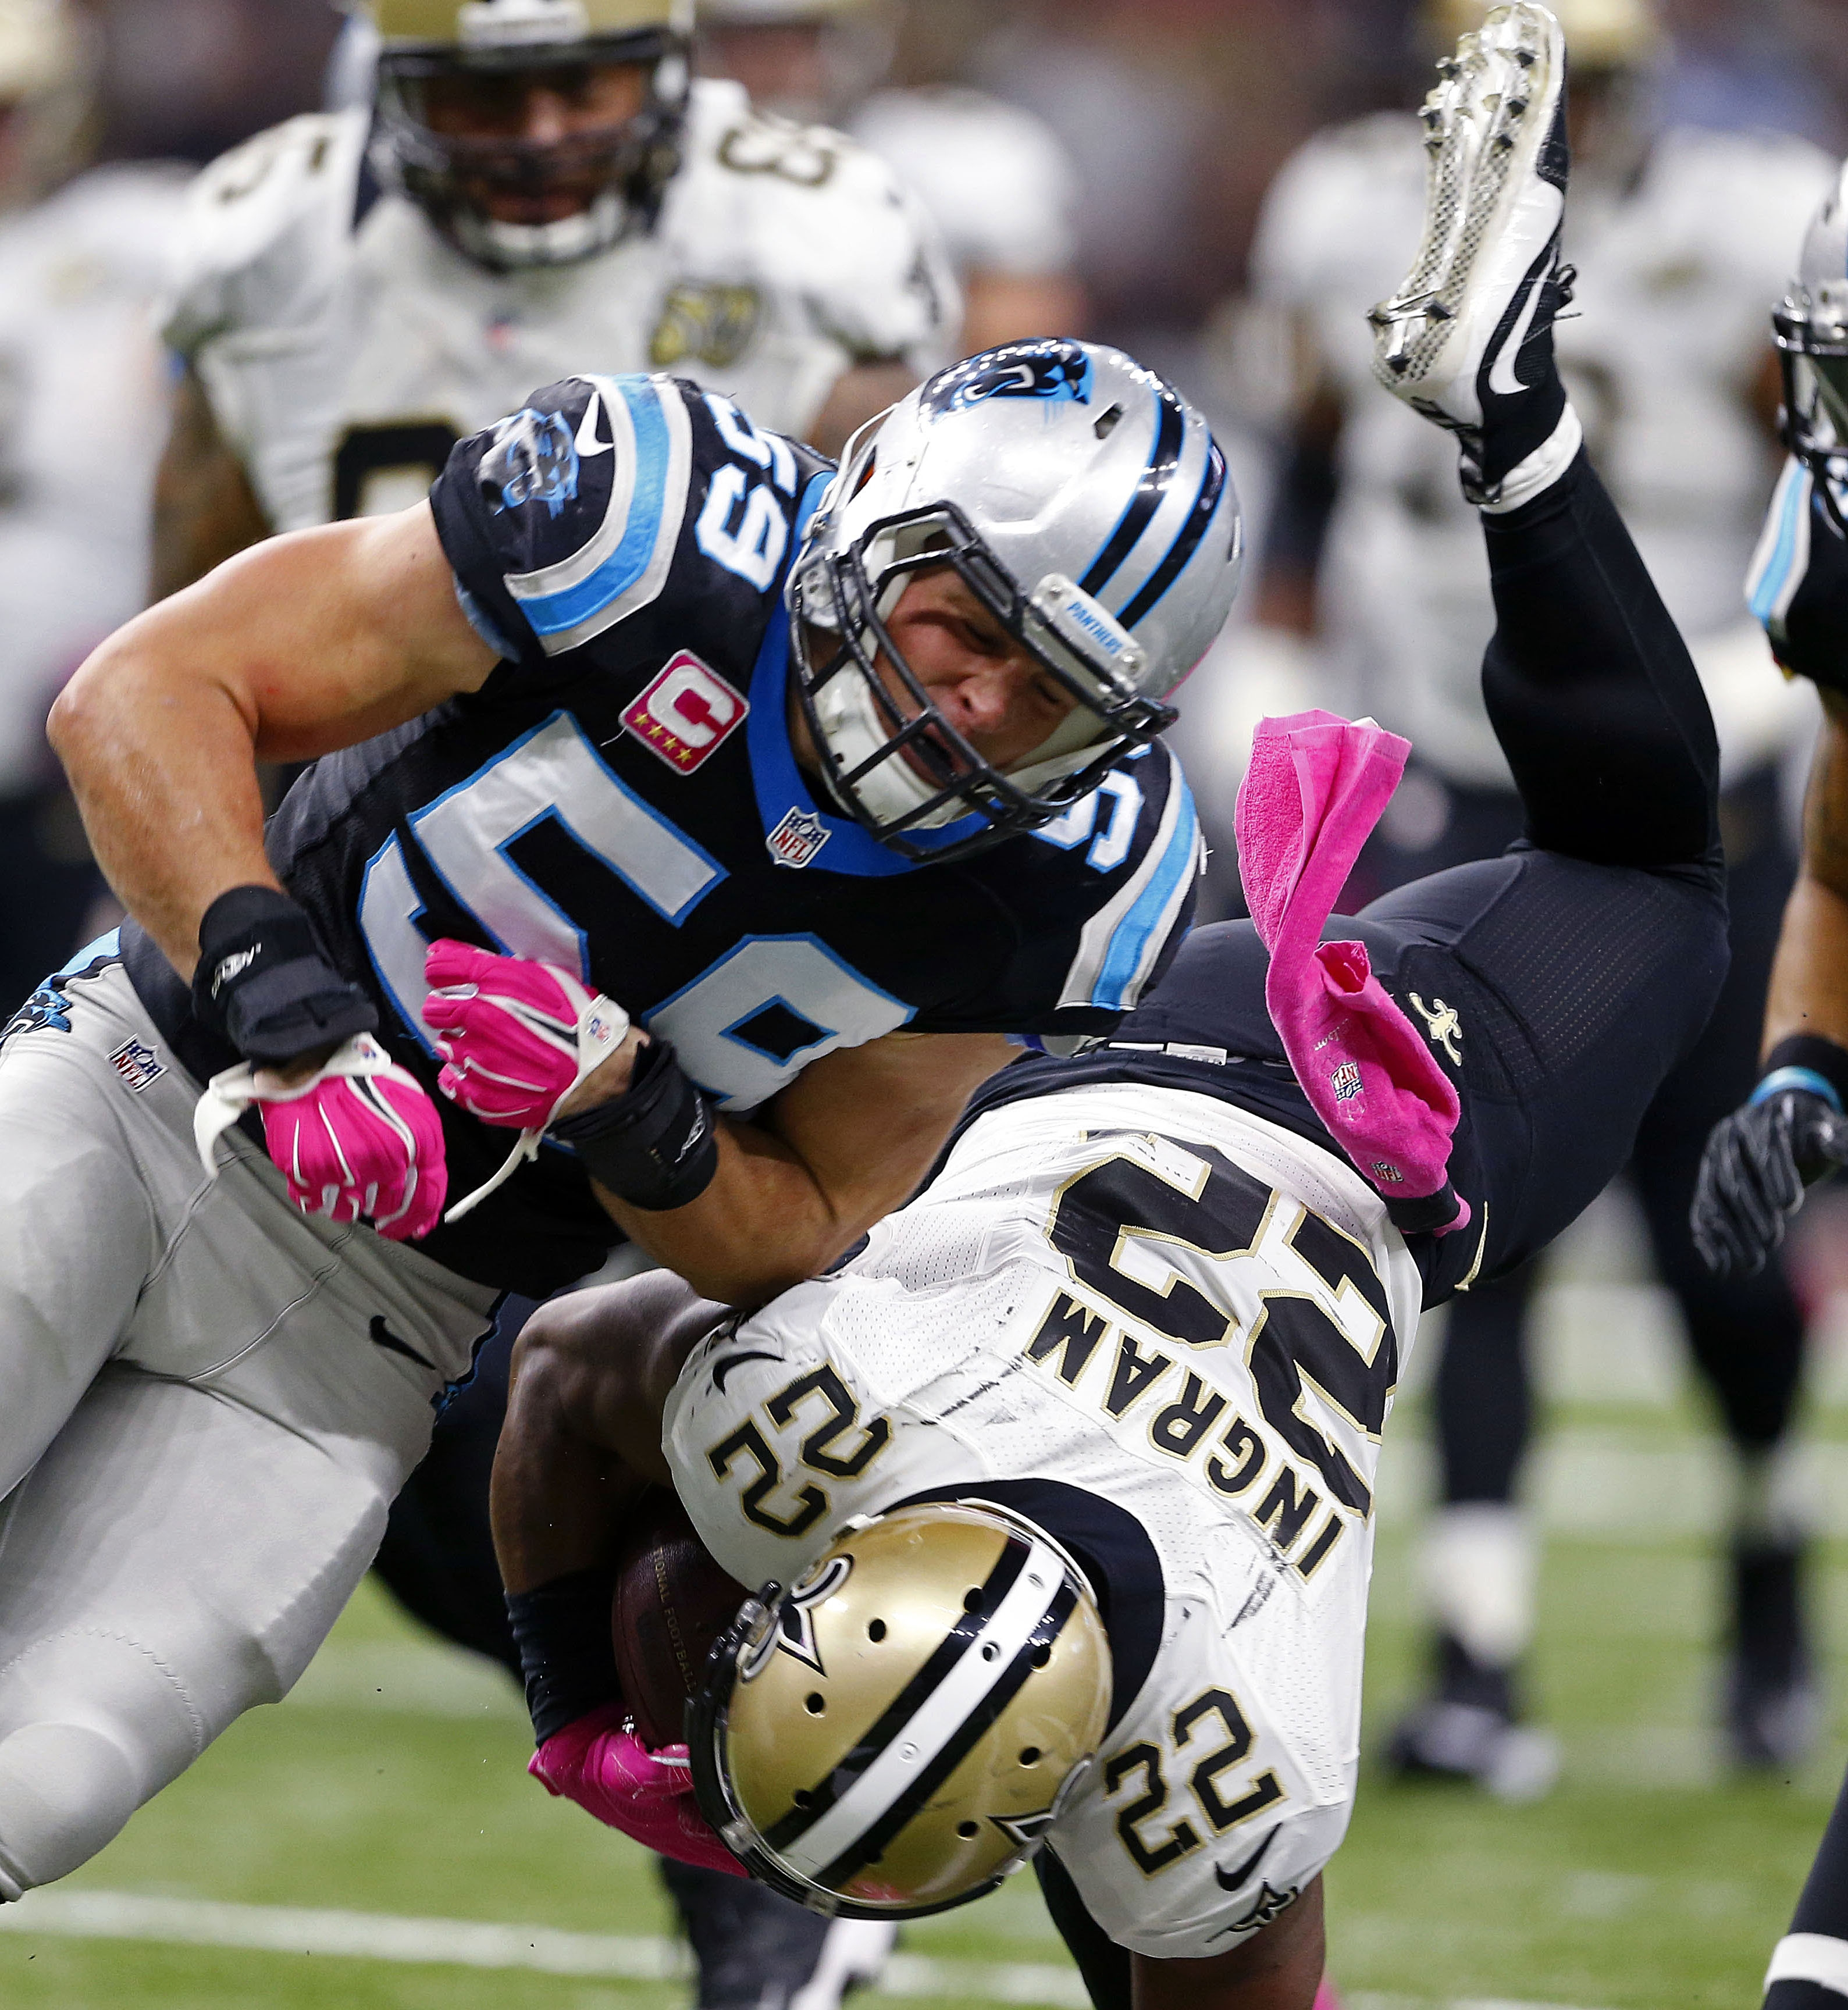 New Orleans Saints running back Mark Ingram (22) is hit by Carolina Panthers middle linebacker Luke Kuechly (59) as he is upended in the first half of an NFL football game in New Orleans, Sunday, Oct. 16, 2016. (AP Photo/Butch Dill)